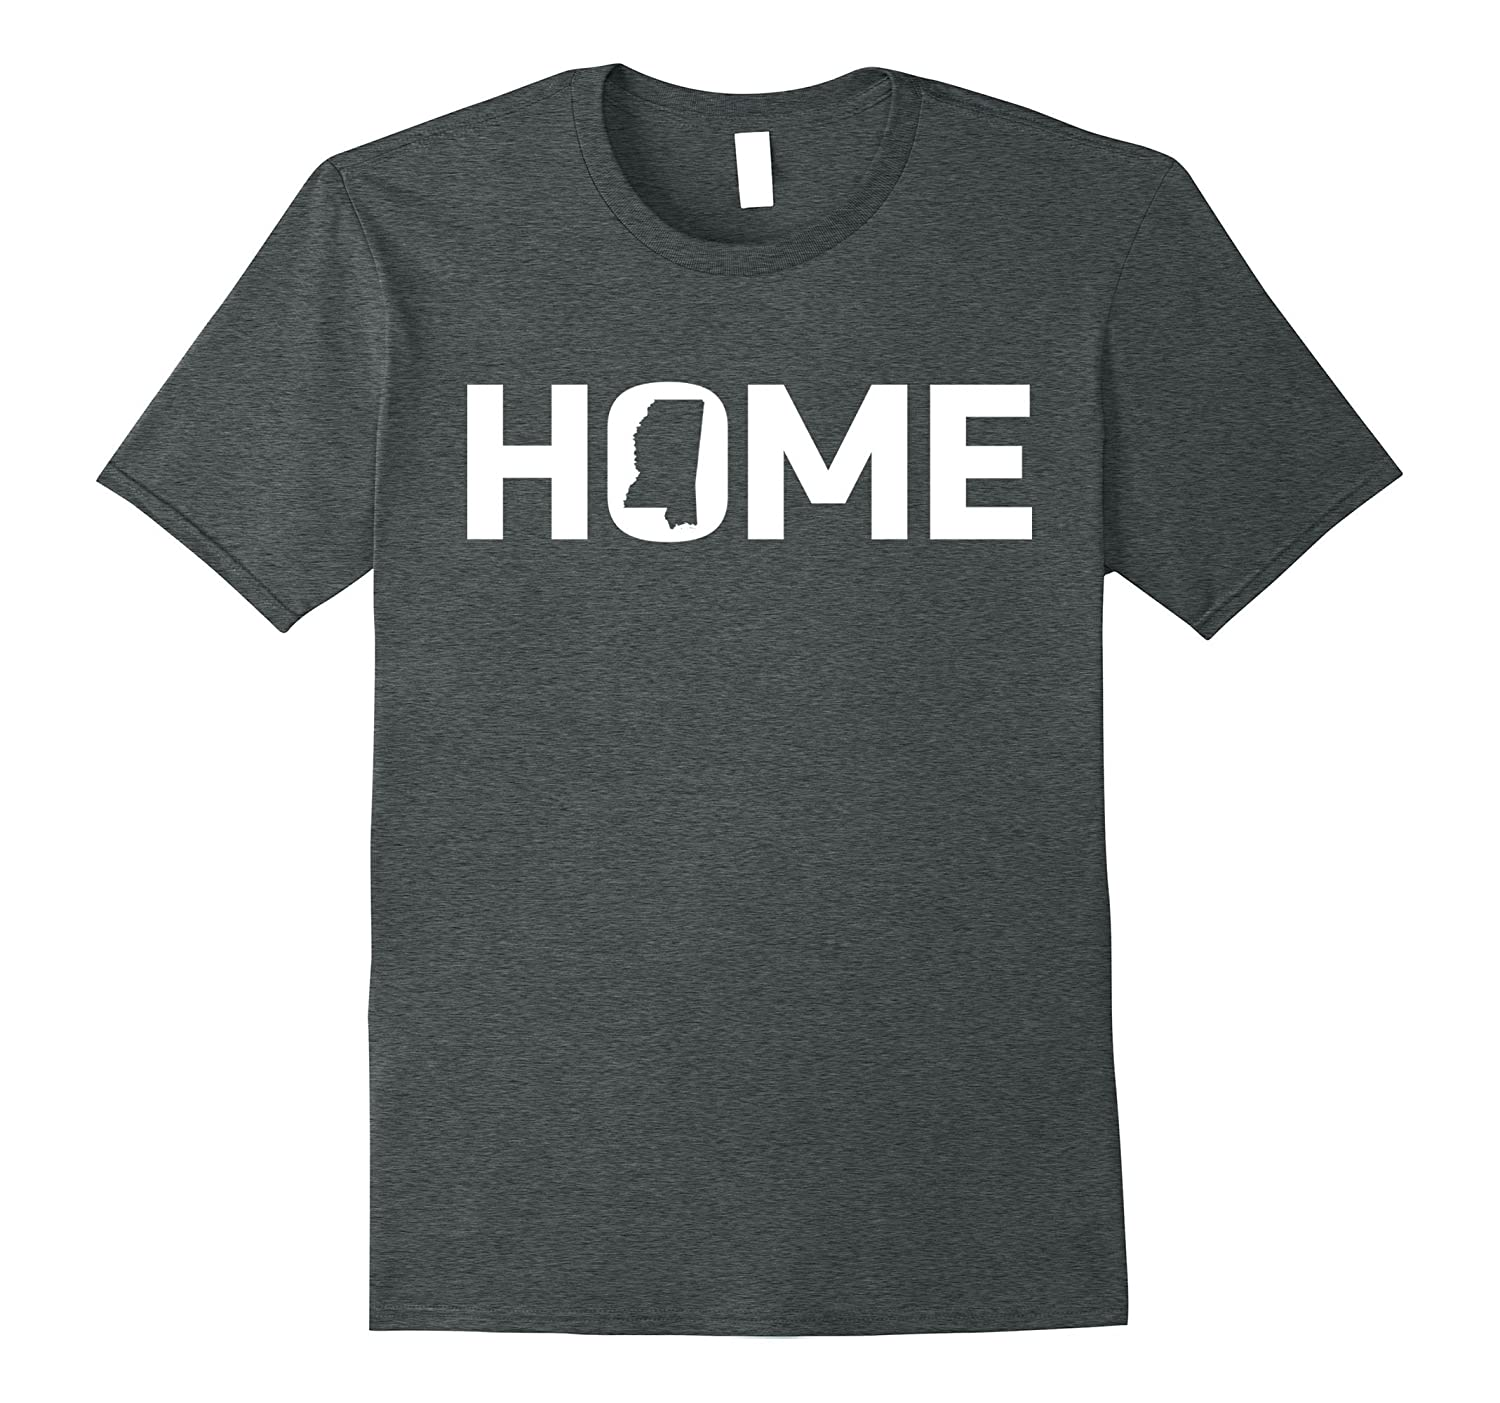 State Pride Home Mississippi T-Shirt for Mississippians-Loveshirt